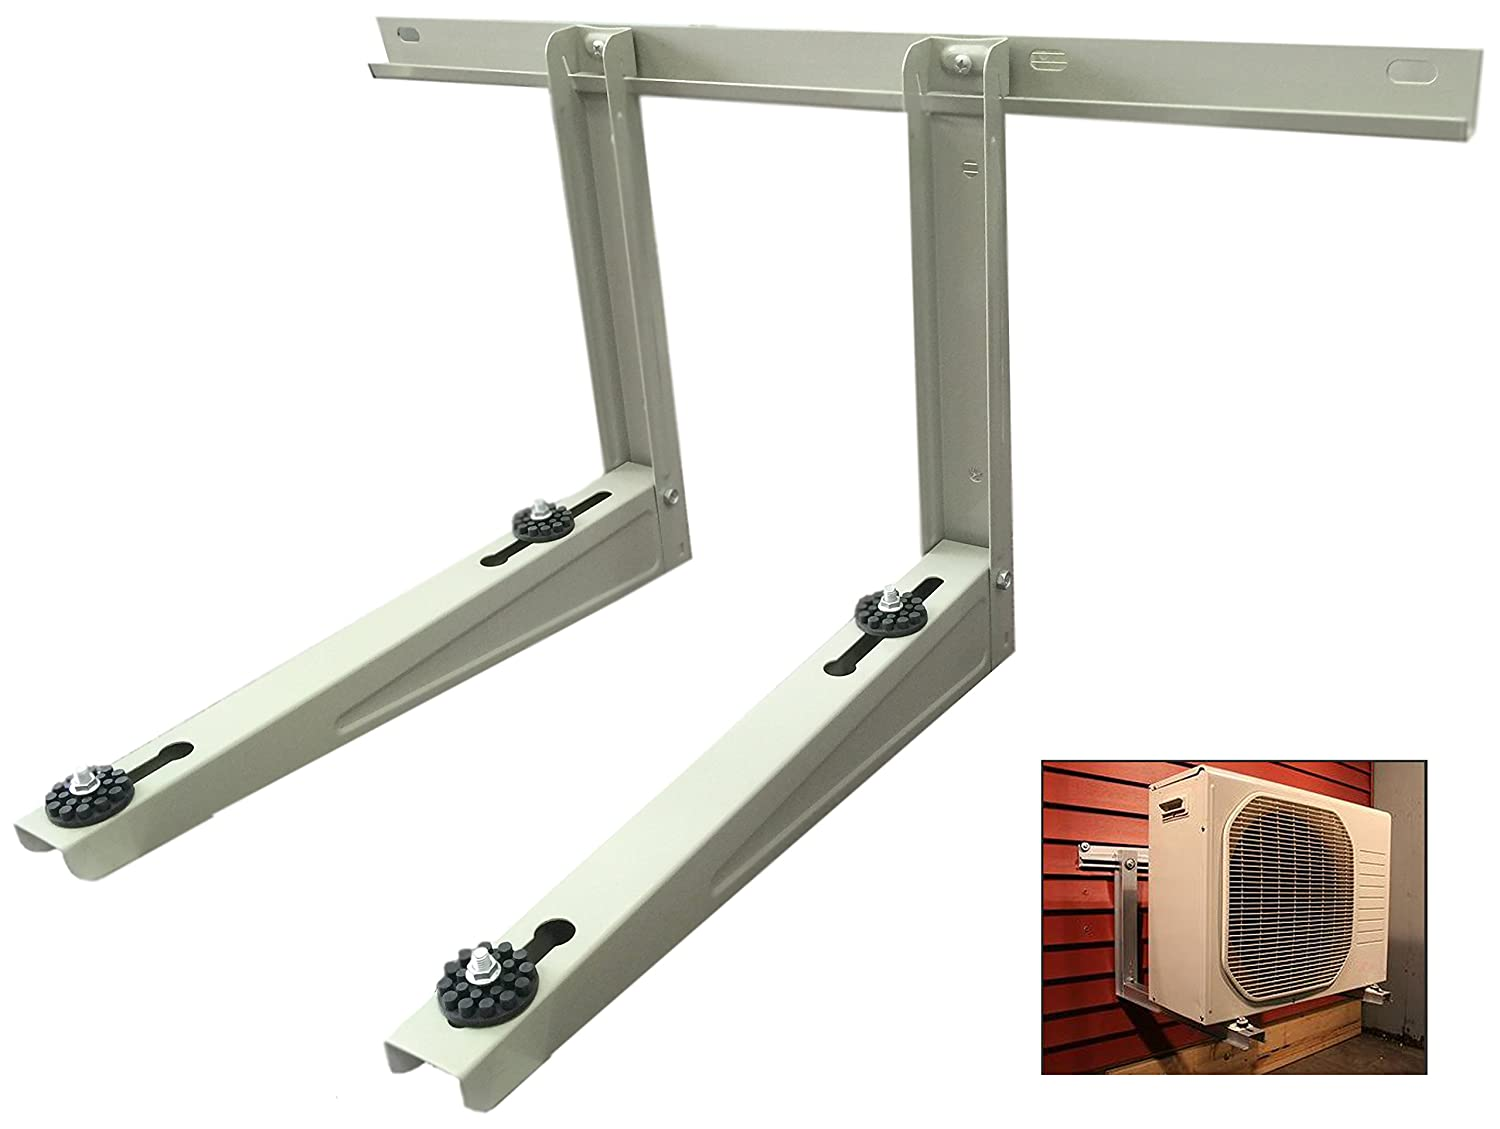 Outdoor Mounting Bracket for Ductless Heat Pump Air Conditioner Systems Condenser Mounting Rack Hold Up To 300 LBS Carnot